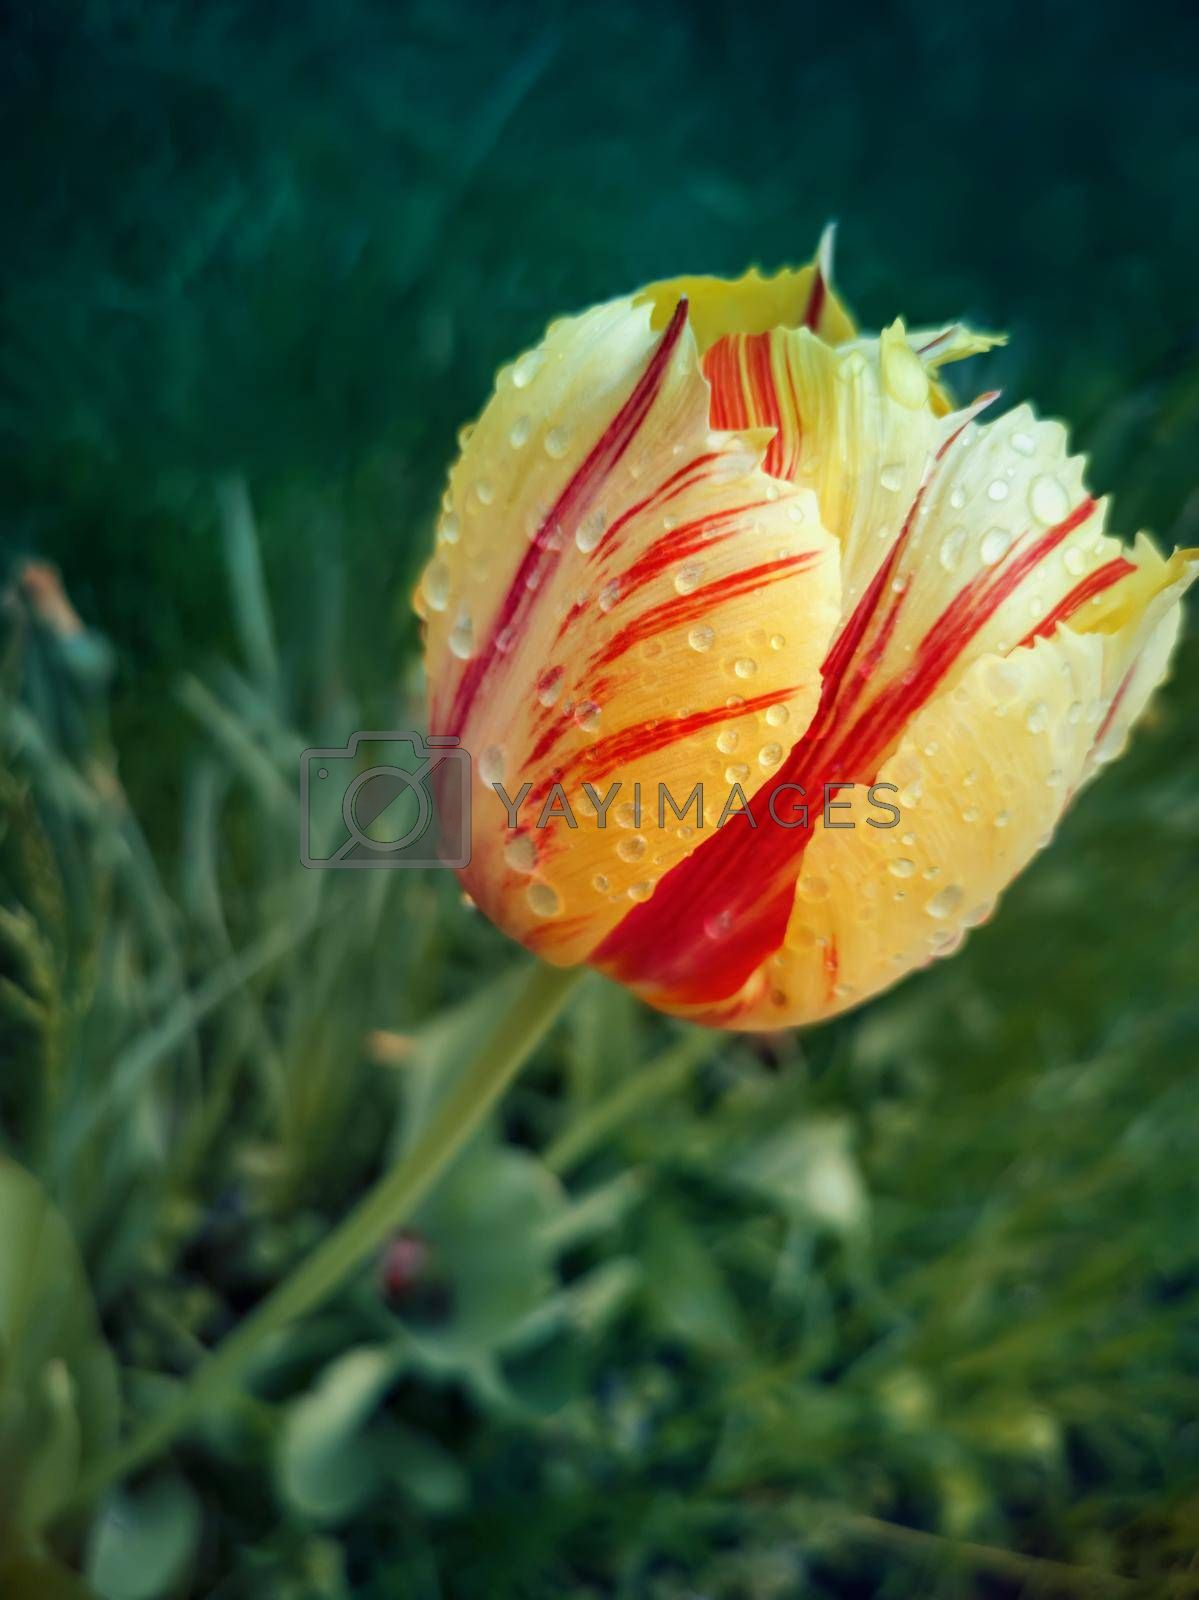 Beautiful yellow-red Tulip among green leaves on a flower bed in the garden. Presented in close-up.